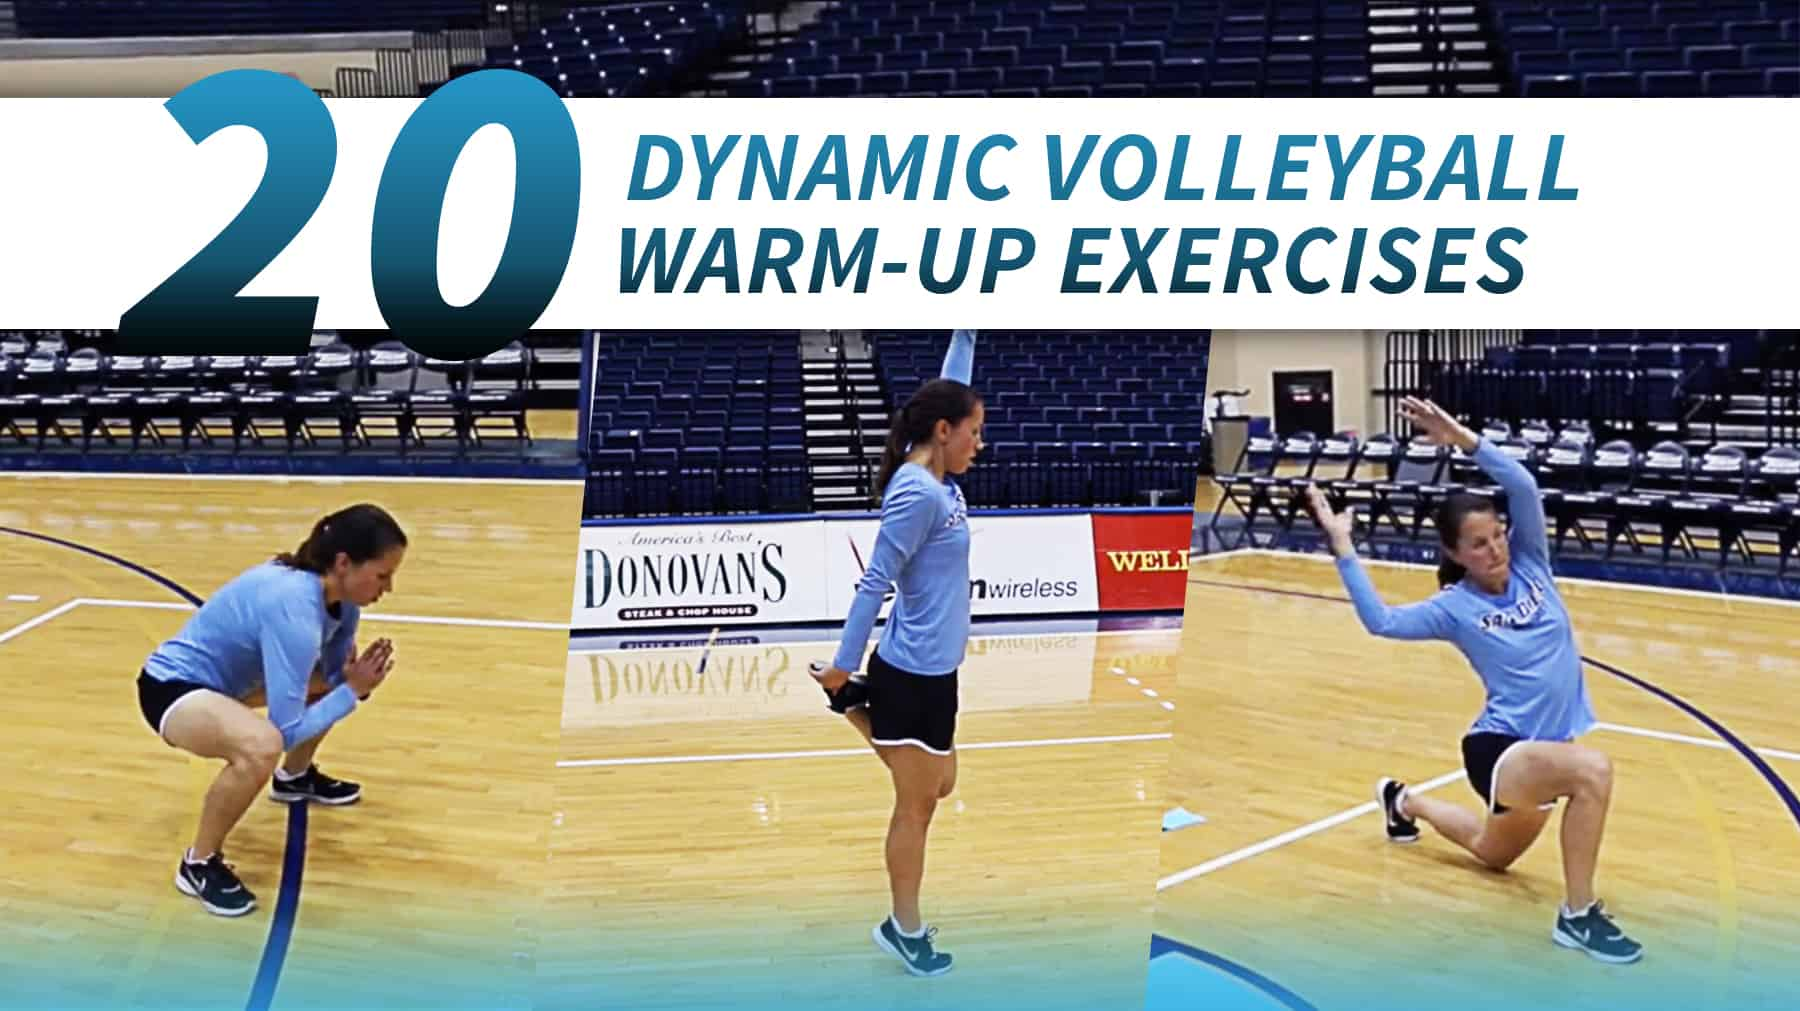 20 dynamic volleyball warmup exercises with Marie Zidek